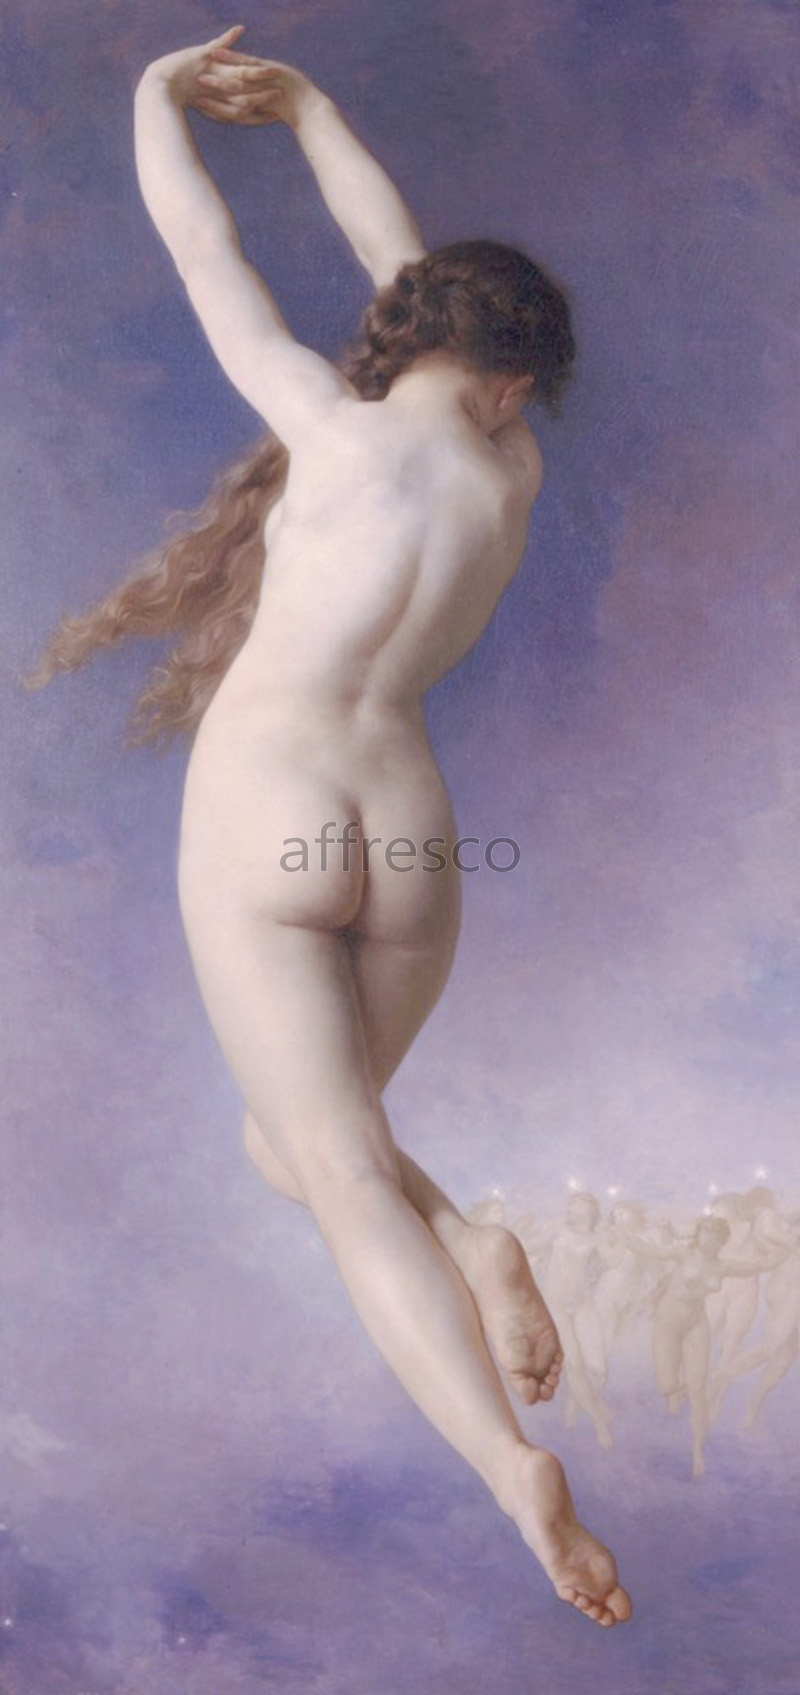 Classical antiquity themes | William Adolphe Bouguereau Lost Pleiad | Affresco Factory